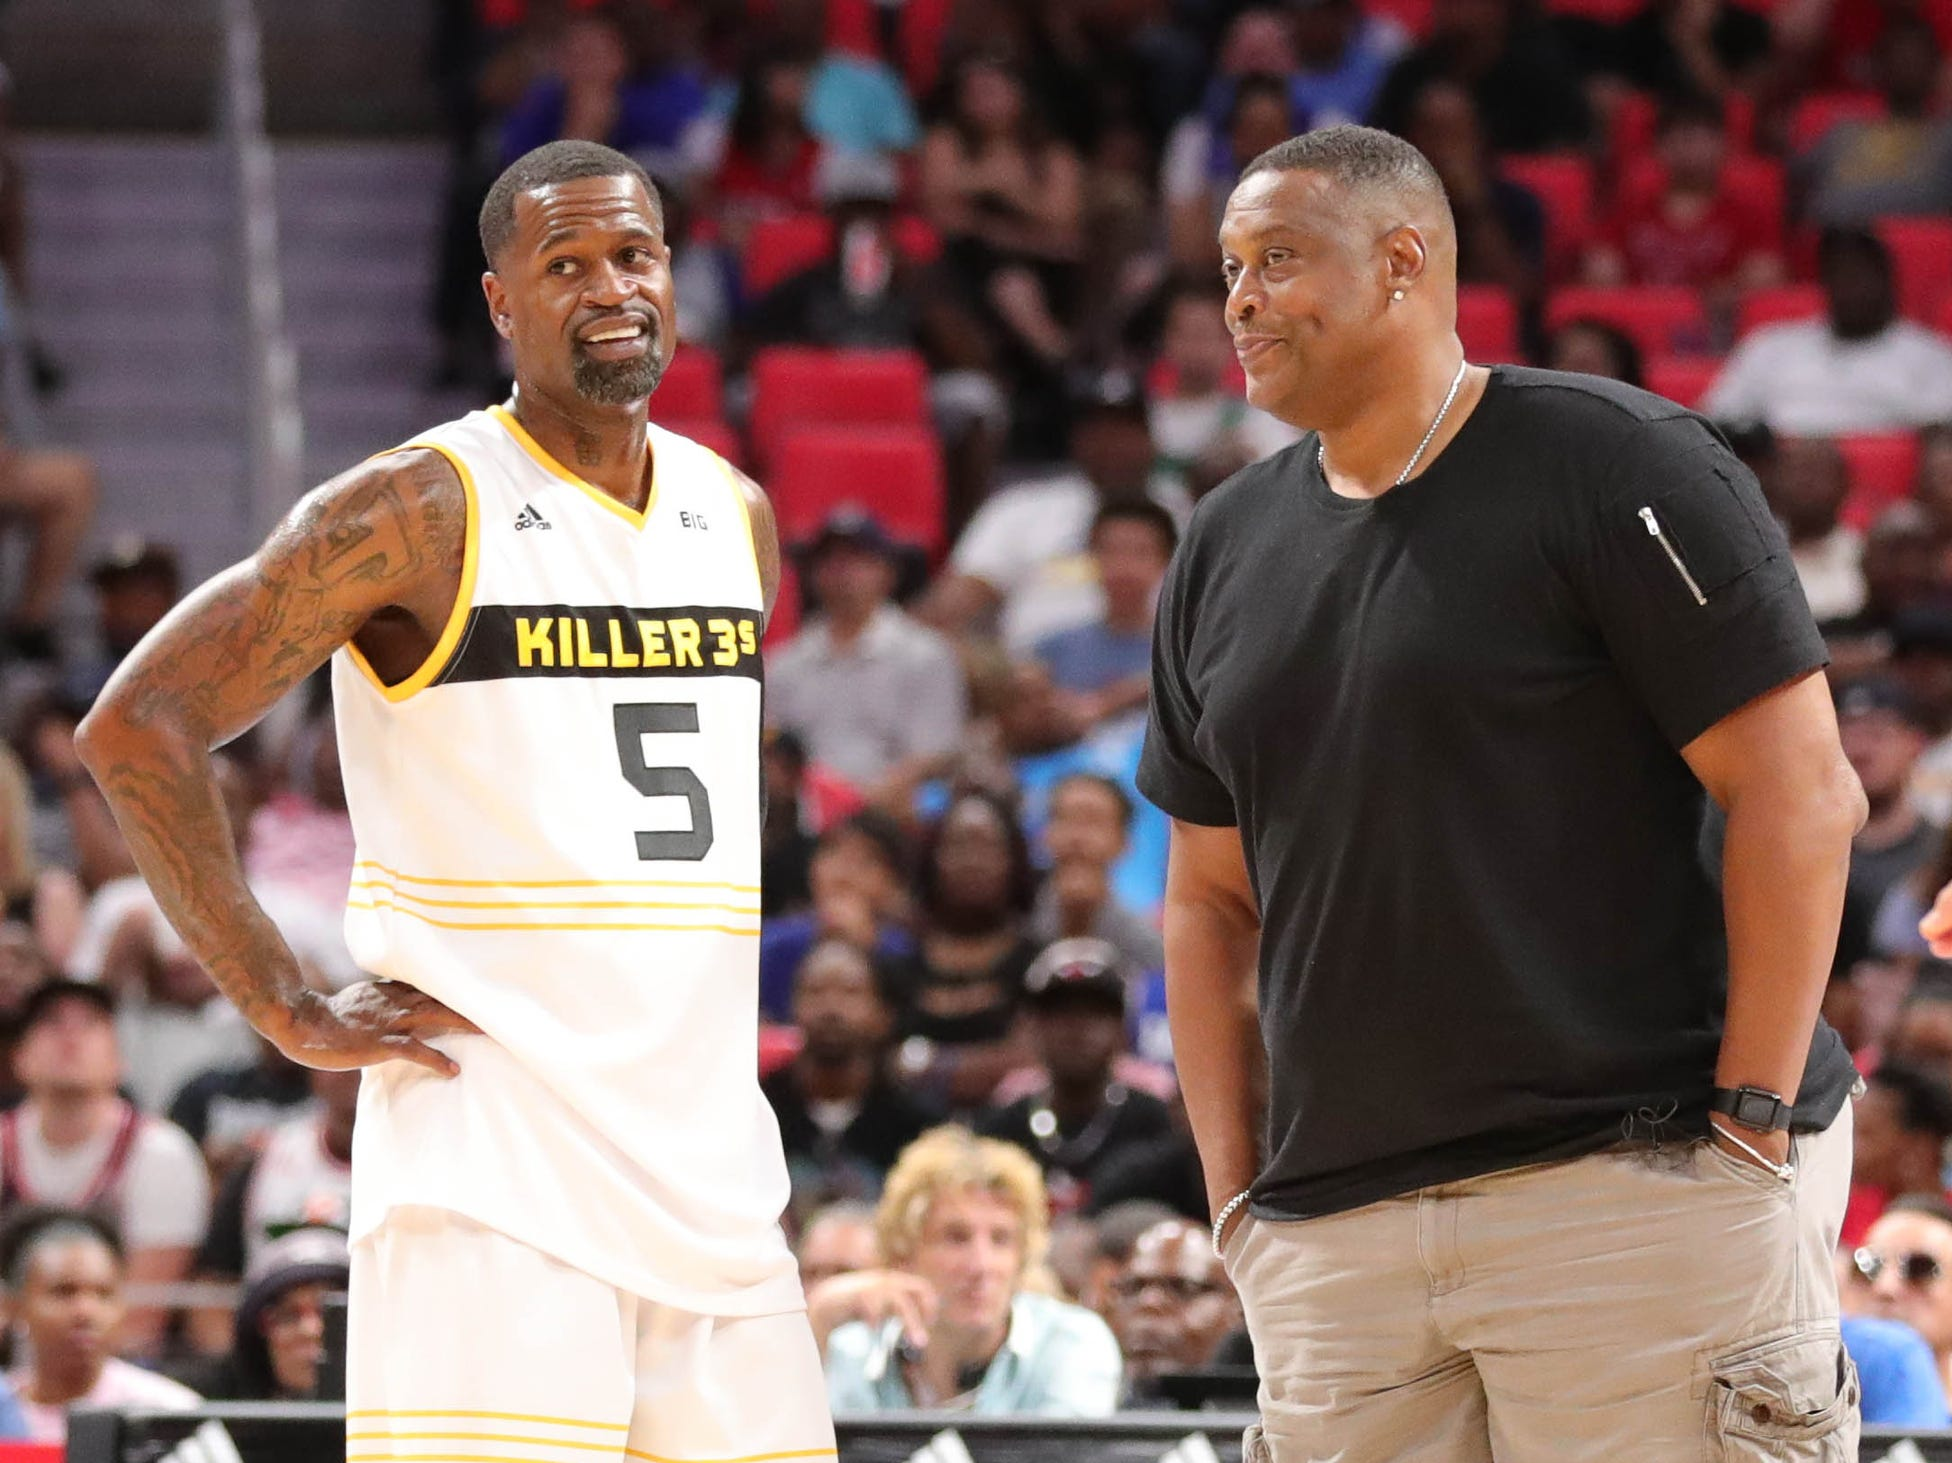 Trilogy head coach Rick Mahorn talks with Killer 3s player Stephen Jackson during BIG3 action on Friday, July 13, 2018 at Little Caesars Arena in Detroit.